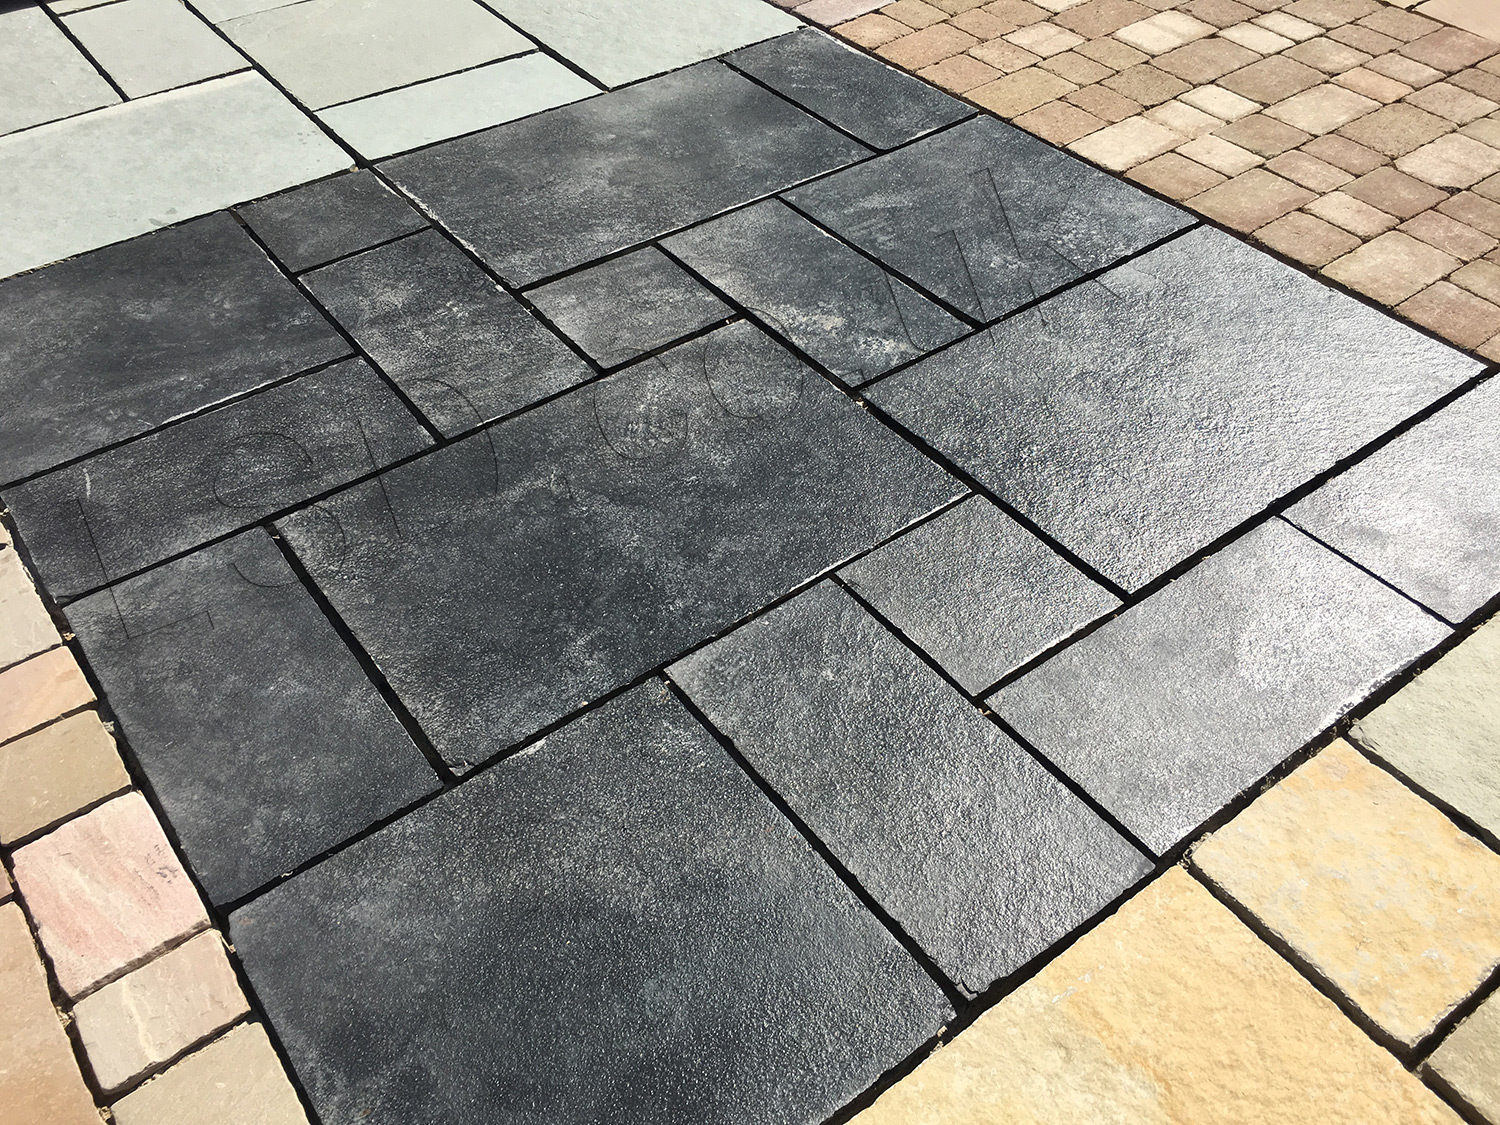 garden planters railway sleepers with Indian Limestone Paving Midnight Kota Black Patio Pack on Stonecraft Paving Slabs Textured Buff also Cheap Paving Slabs Riven Black 450 X 450mm in addition Natural Granite Paving Dark Grey Patio Pack furthermore Planter Box also Square Floating Oak Coffee Table.